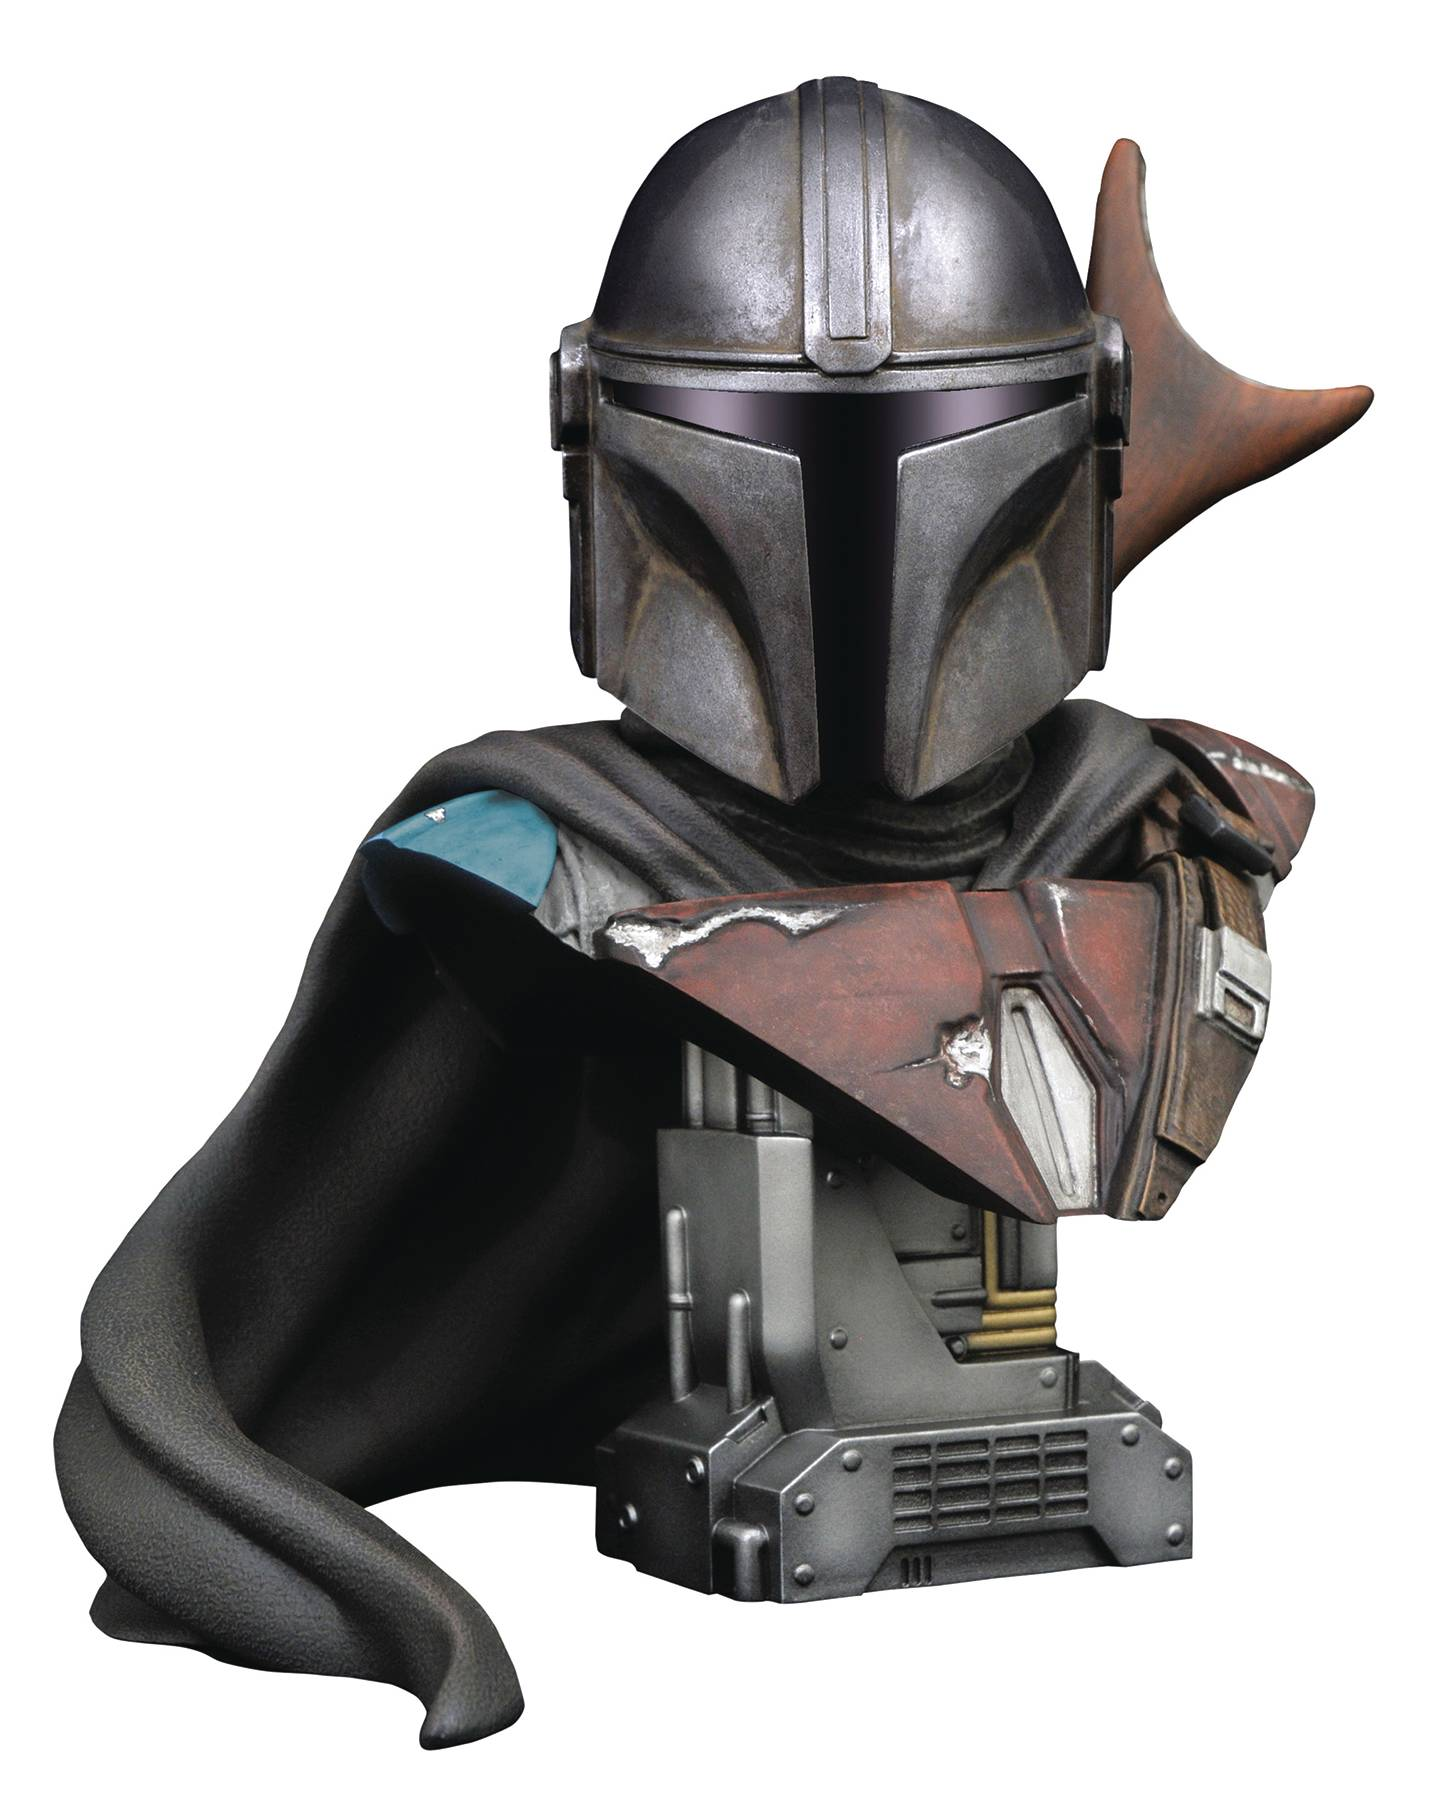 Pre-Order Diamond Star Wars The Mandalorian Legends in 3D Bust